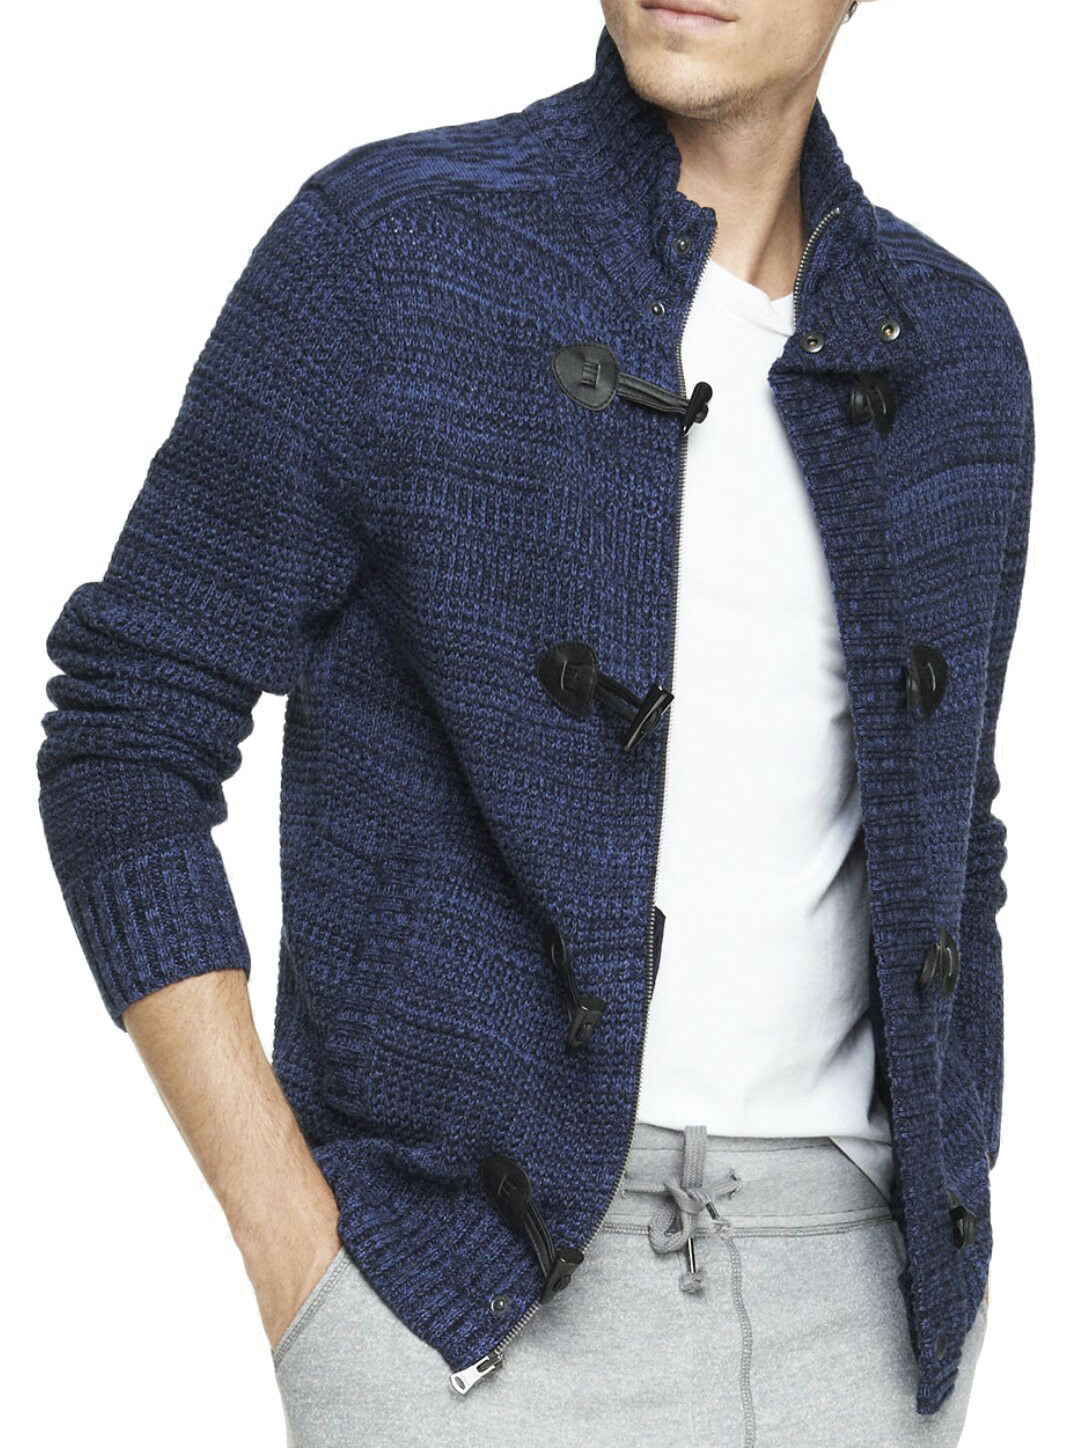 New EXPRESS Men's Marled Waffle Knit Toggle Cardigan Sweater, NWT【L】【】 LAST